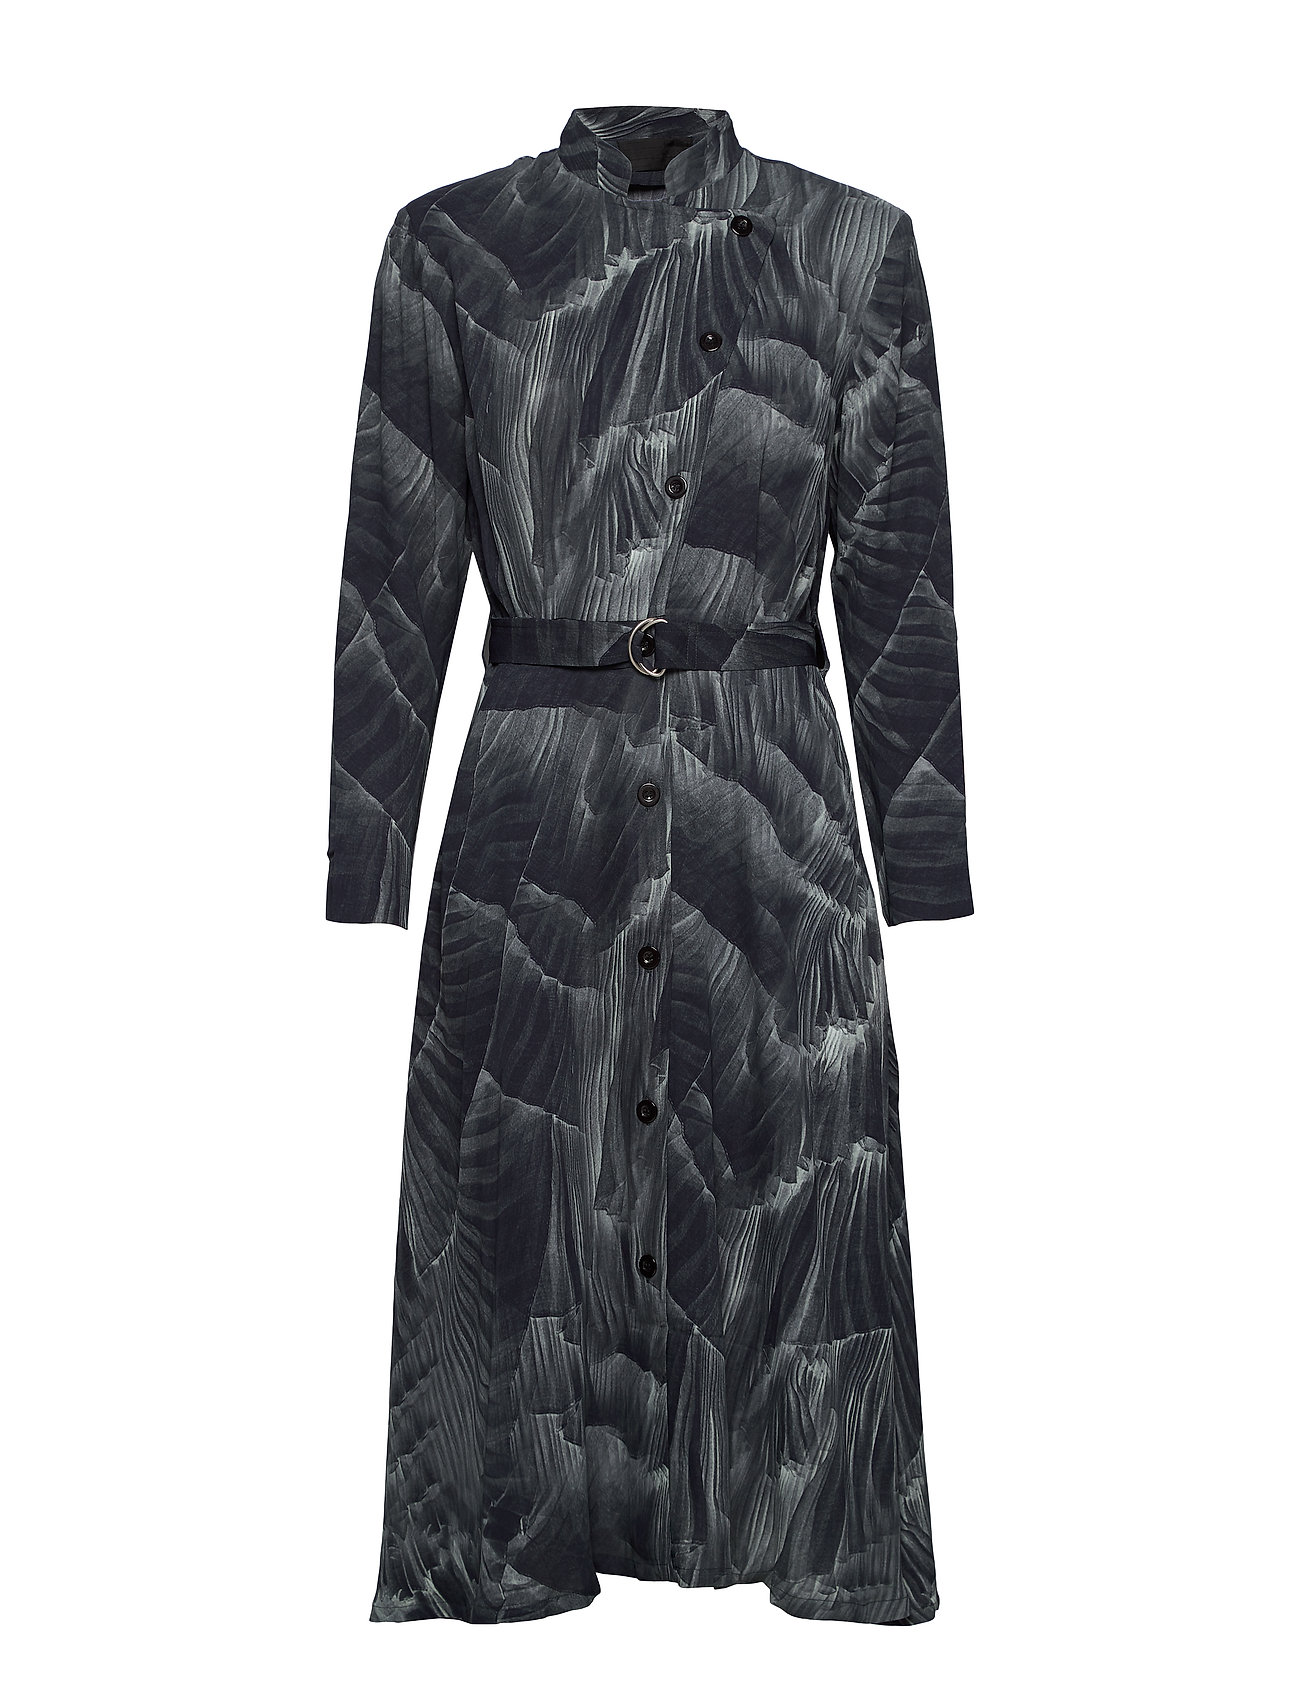 Diana Orving Robe dress - PRINT PLEAT (GREY)